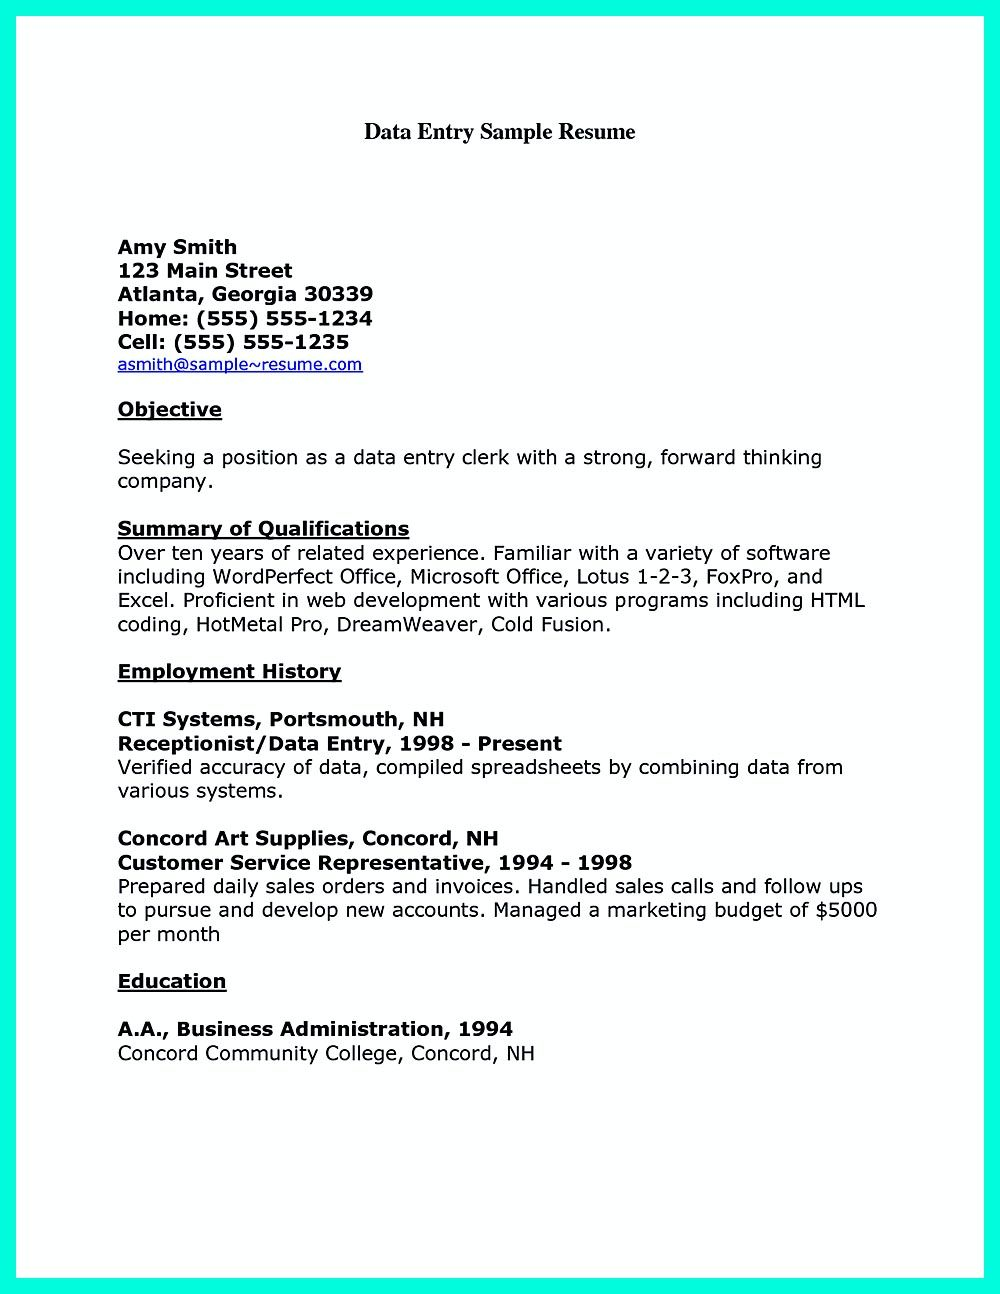 Perfect Data Entry Resume Samples To Get Hired Data Entry Clerk Resume Data Entry